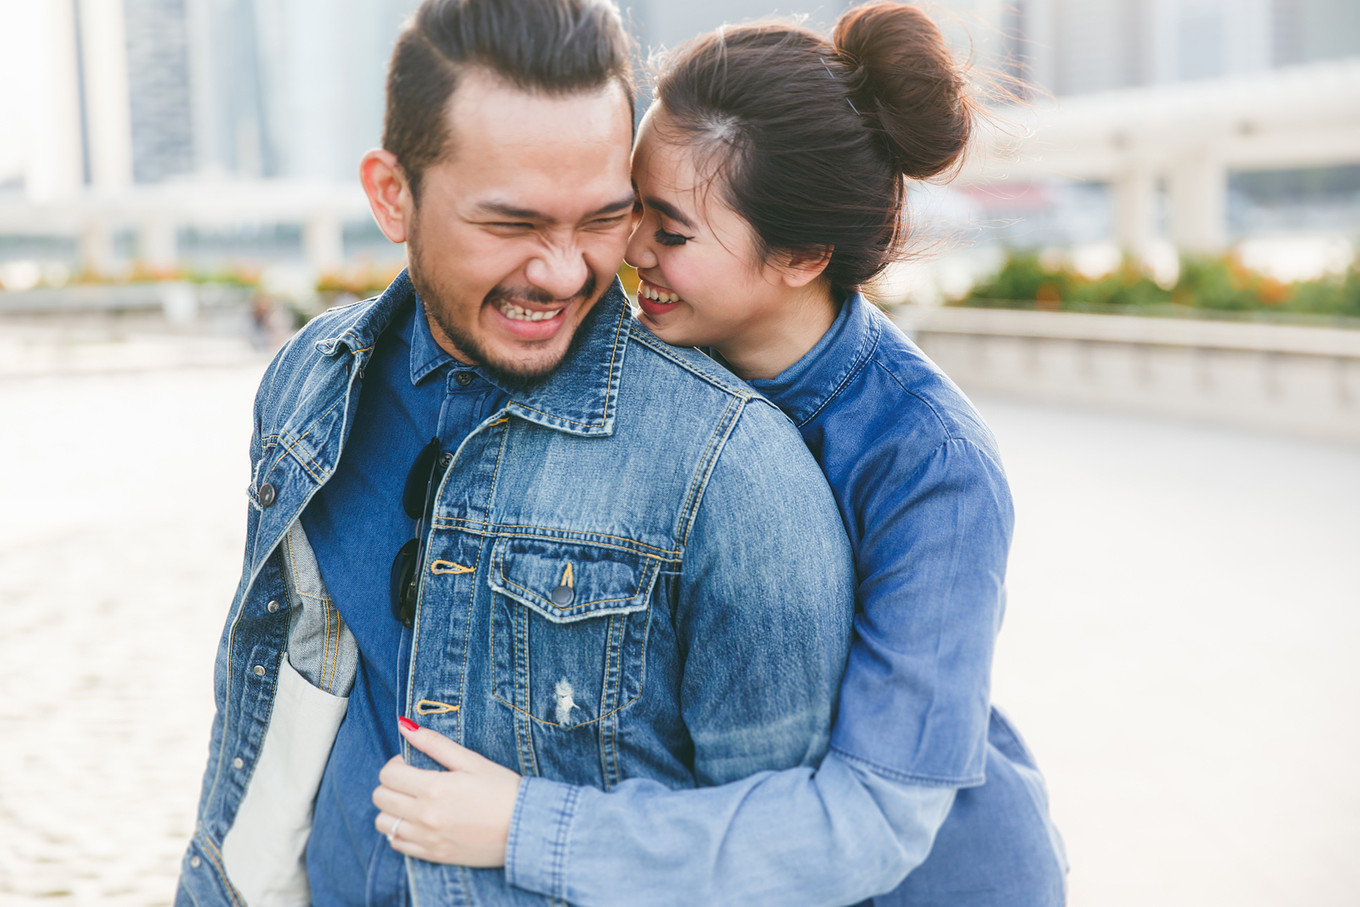 singapore casual dating Free classified ads for personals and everything else find what you are looking for or create your own ad for free.